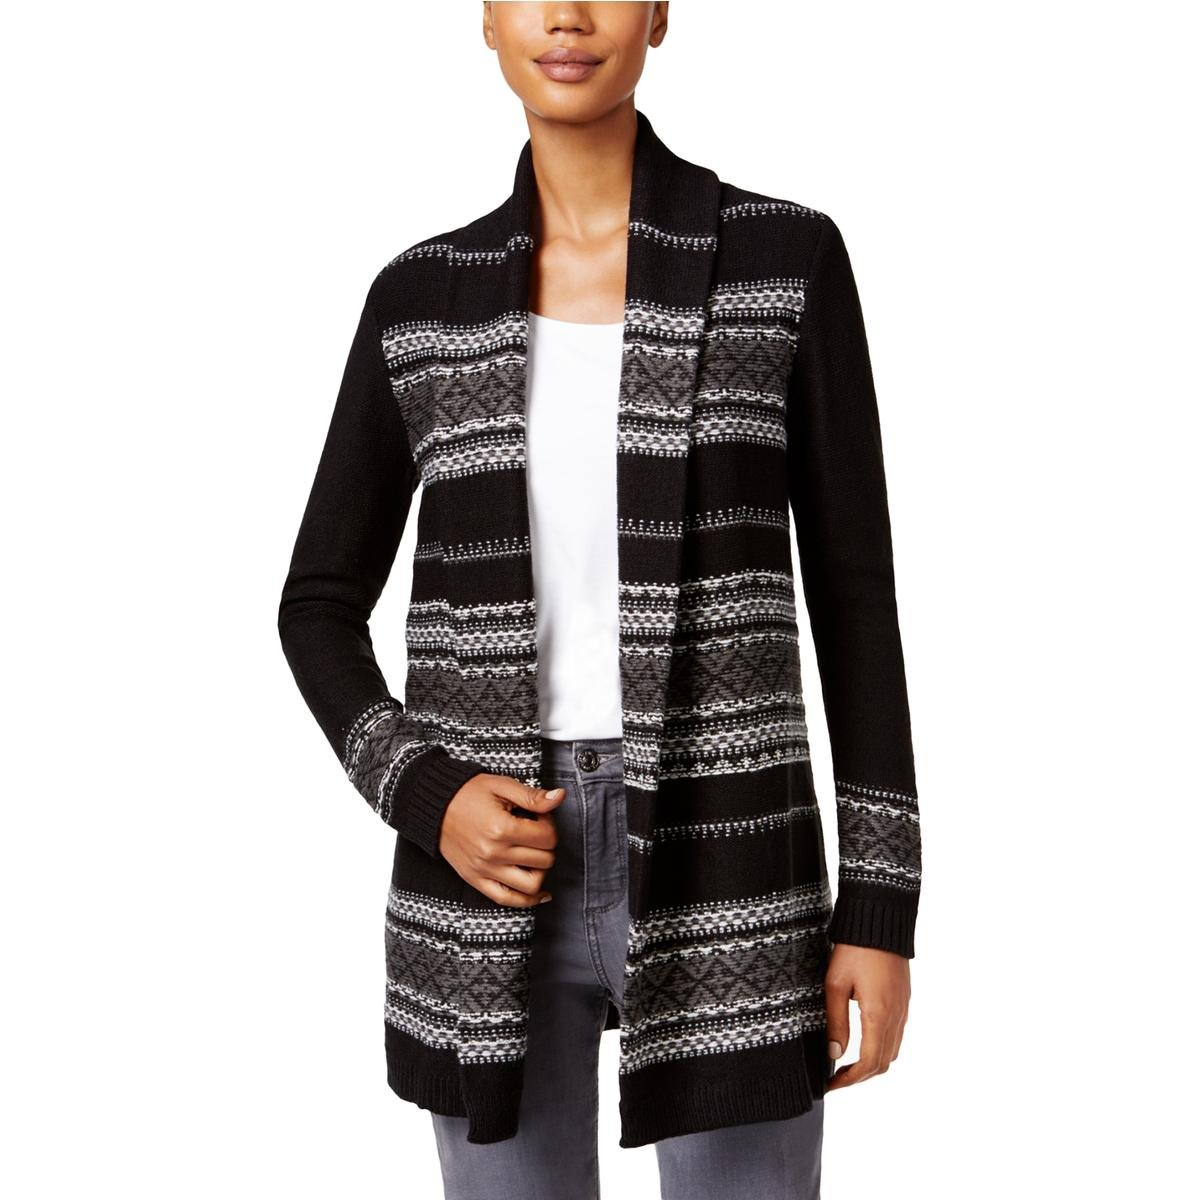 Style & Co. Womens Petites Jacquard Open Front Cardigan Sweater B/W PL